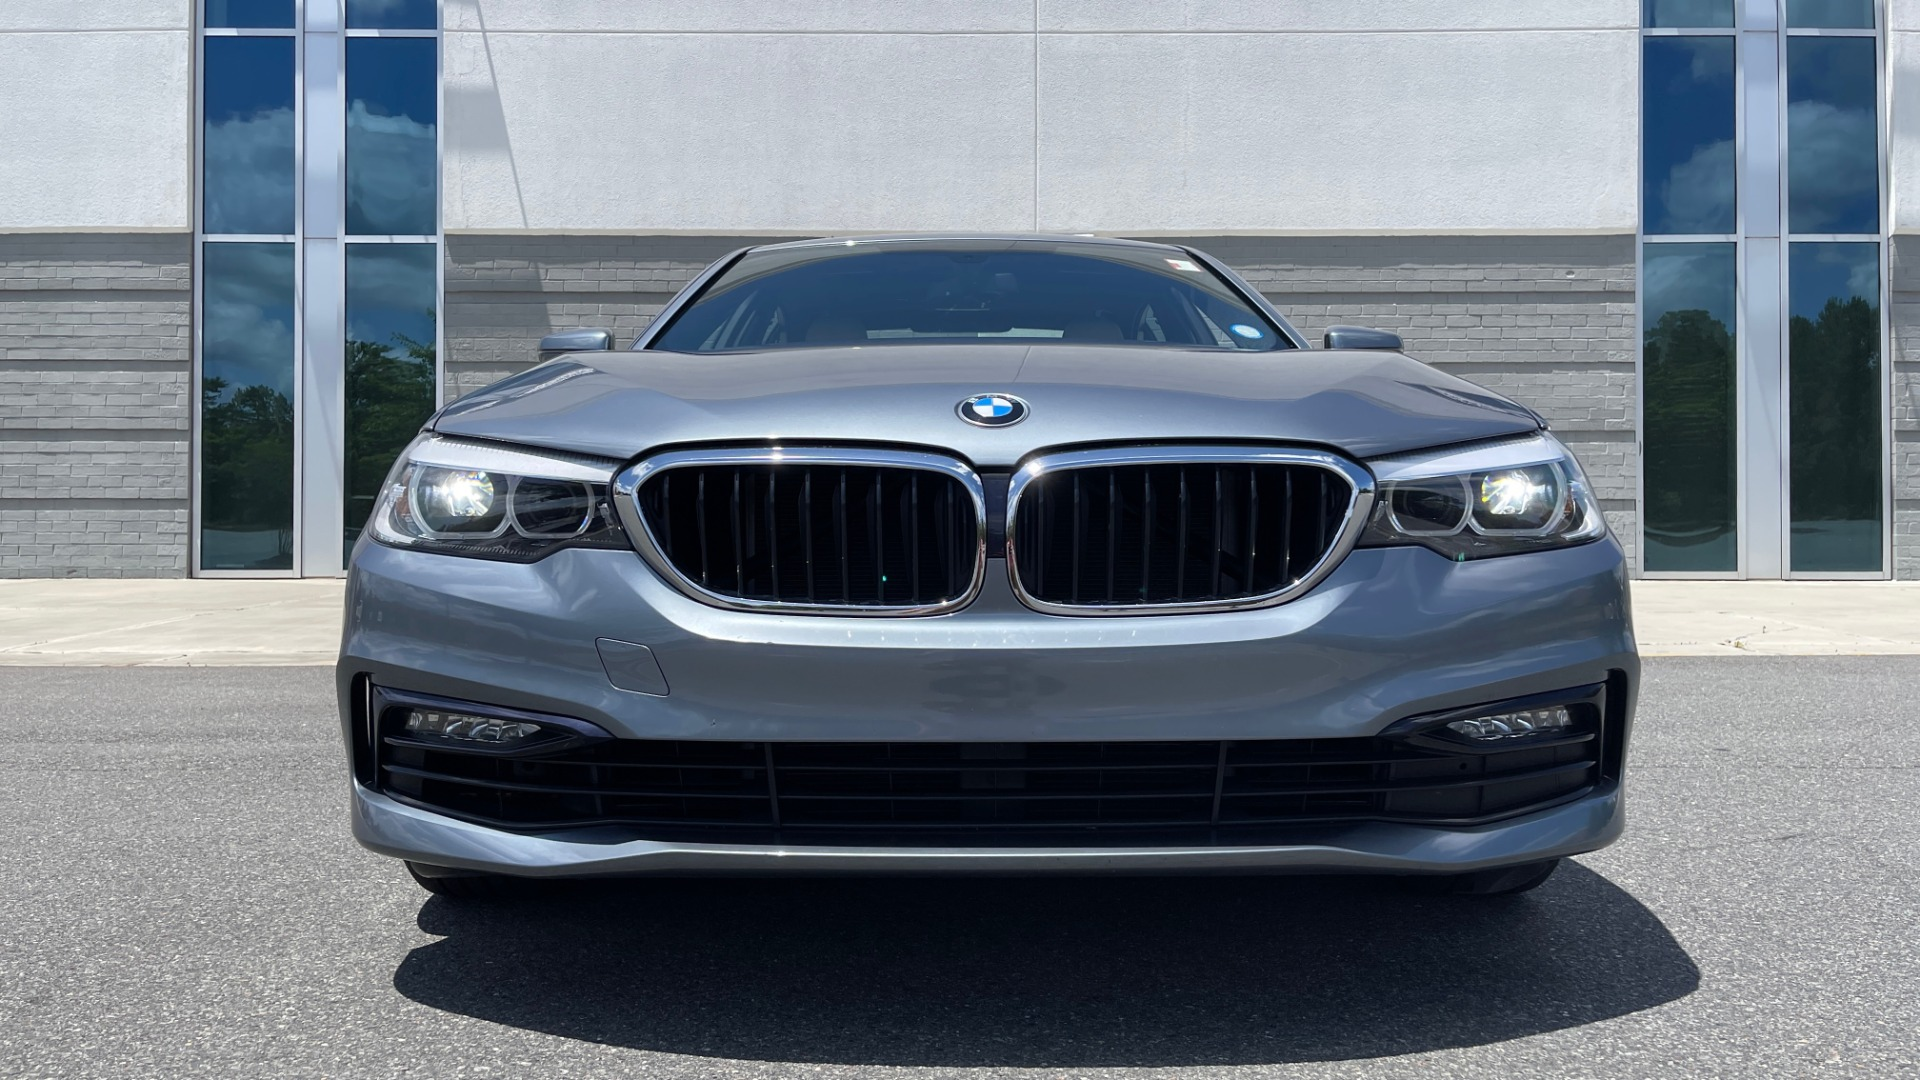 Used 2017 BMW 5 SERIES 530I PREMIUM / WIFI / NAV / SUNROOF / AUTO CLIMATE CONTROL for sale $31,795 at Formula Imports in Charlotte NC 28227 13